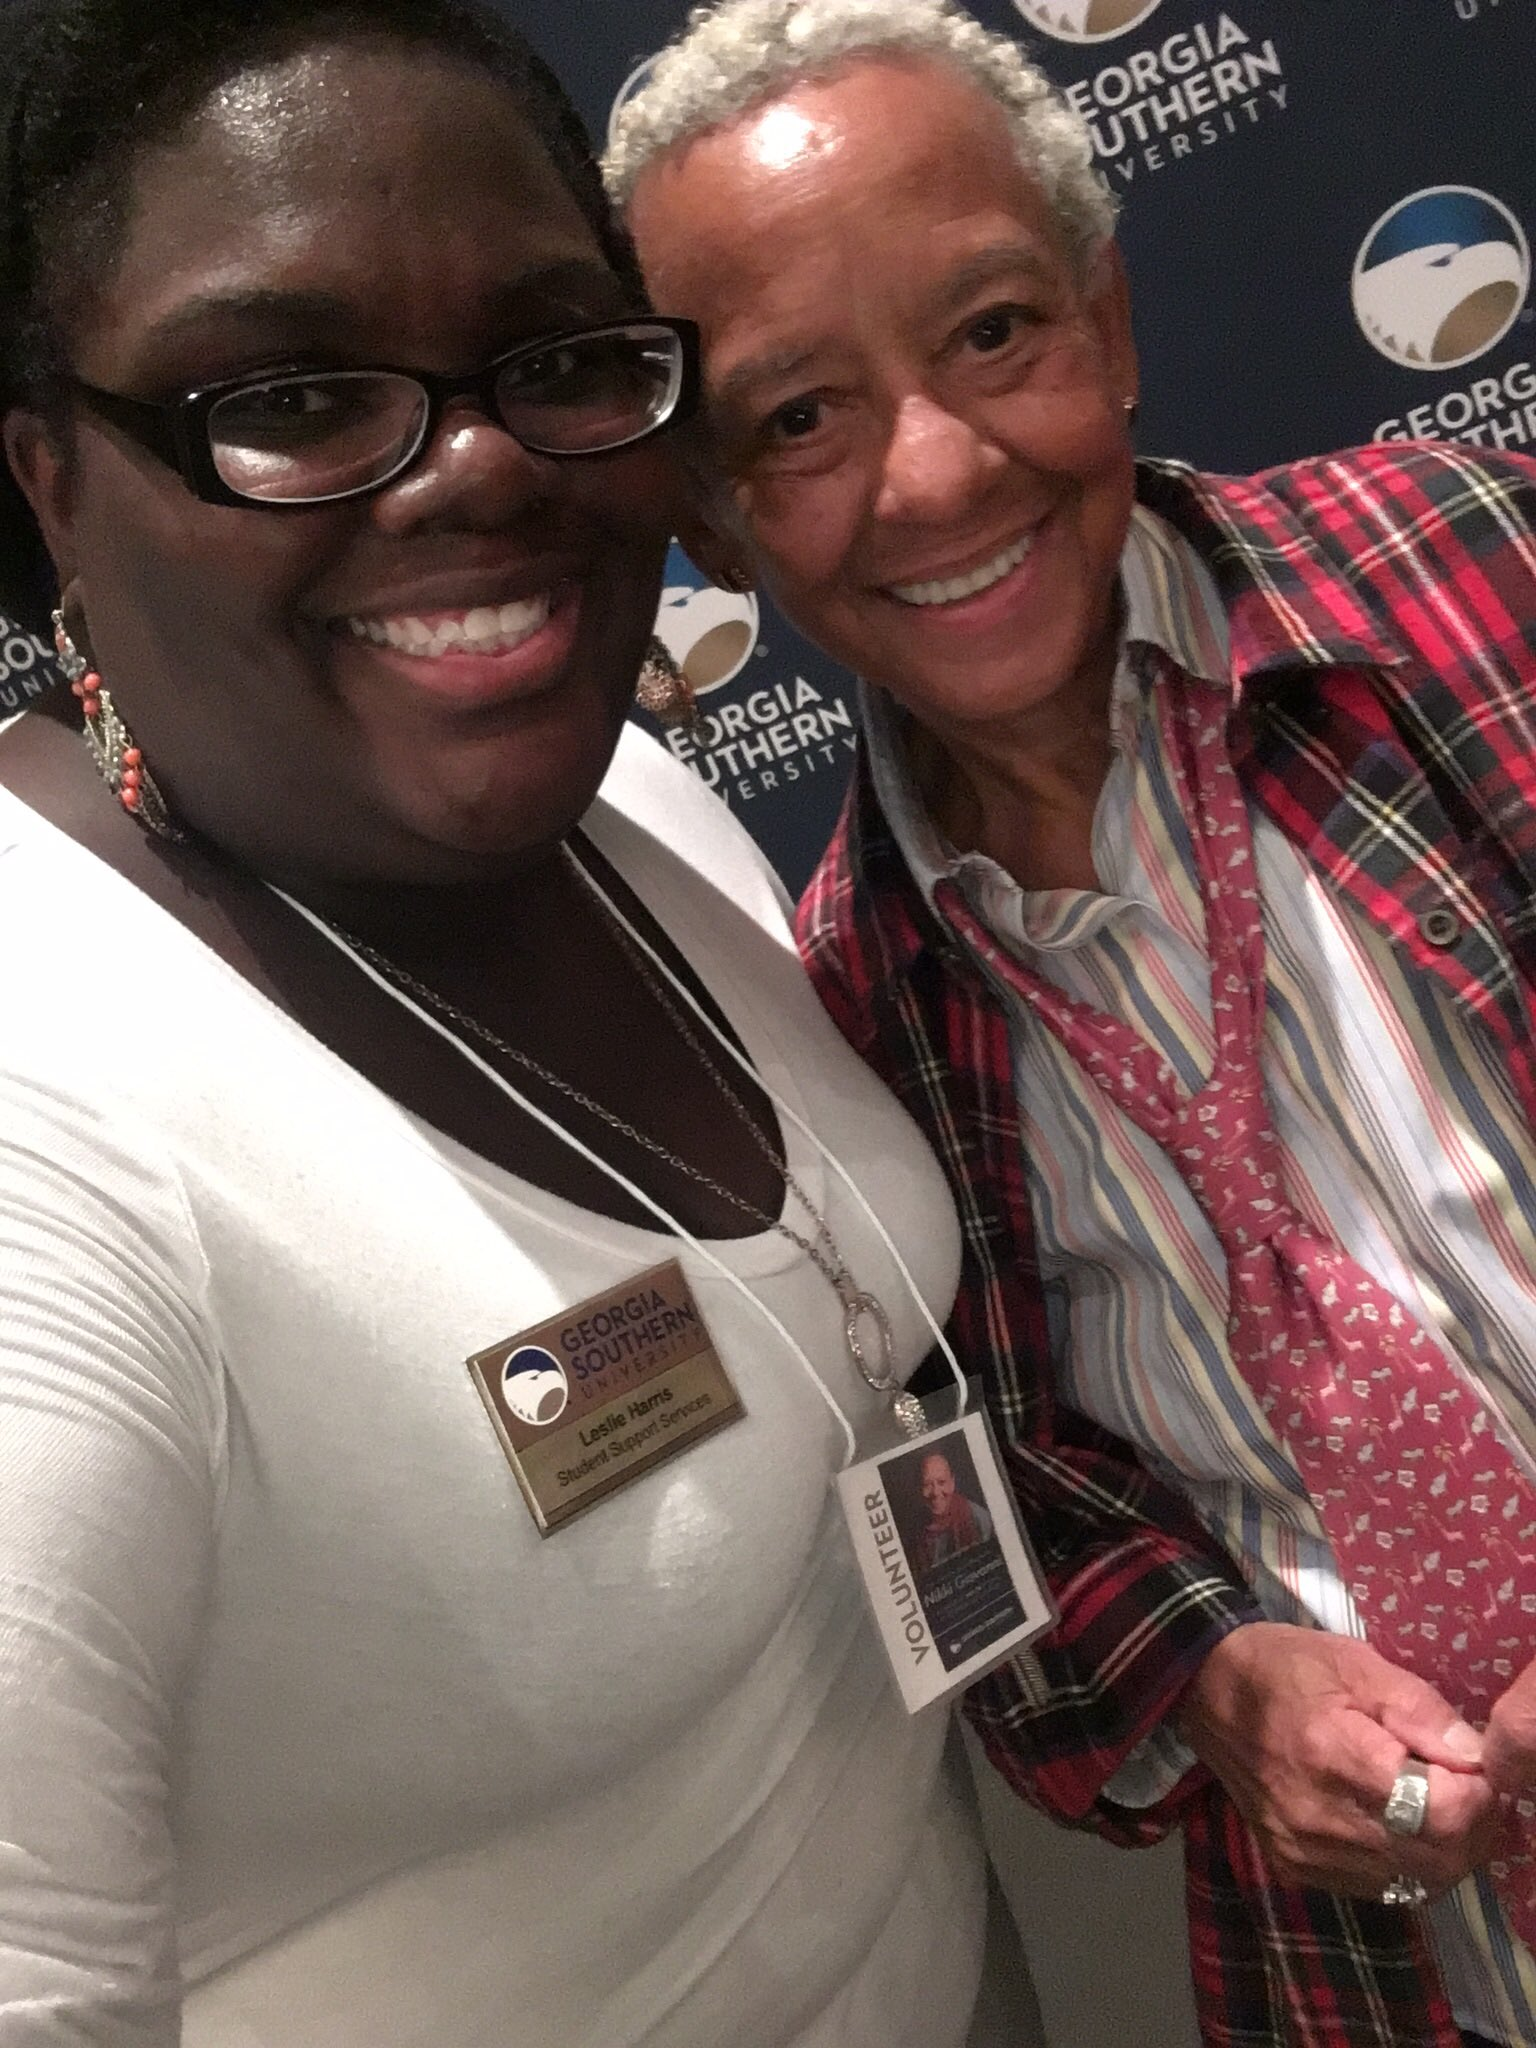 Had the opportunity to hear Nikki Giovanni speak tonight, and it was great! Got this selfie too! https://t.co/J7hmrvteIe